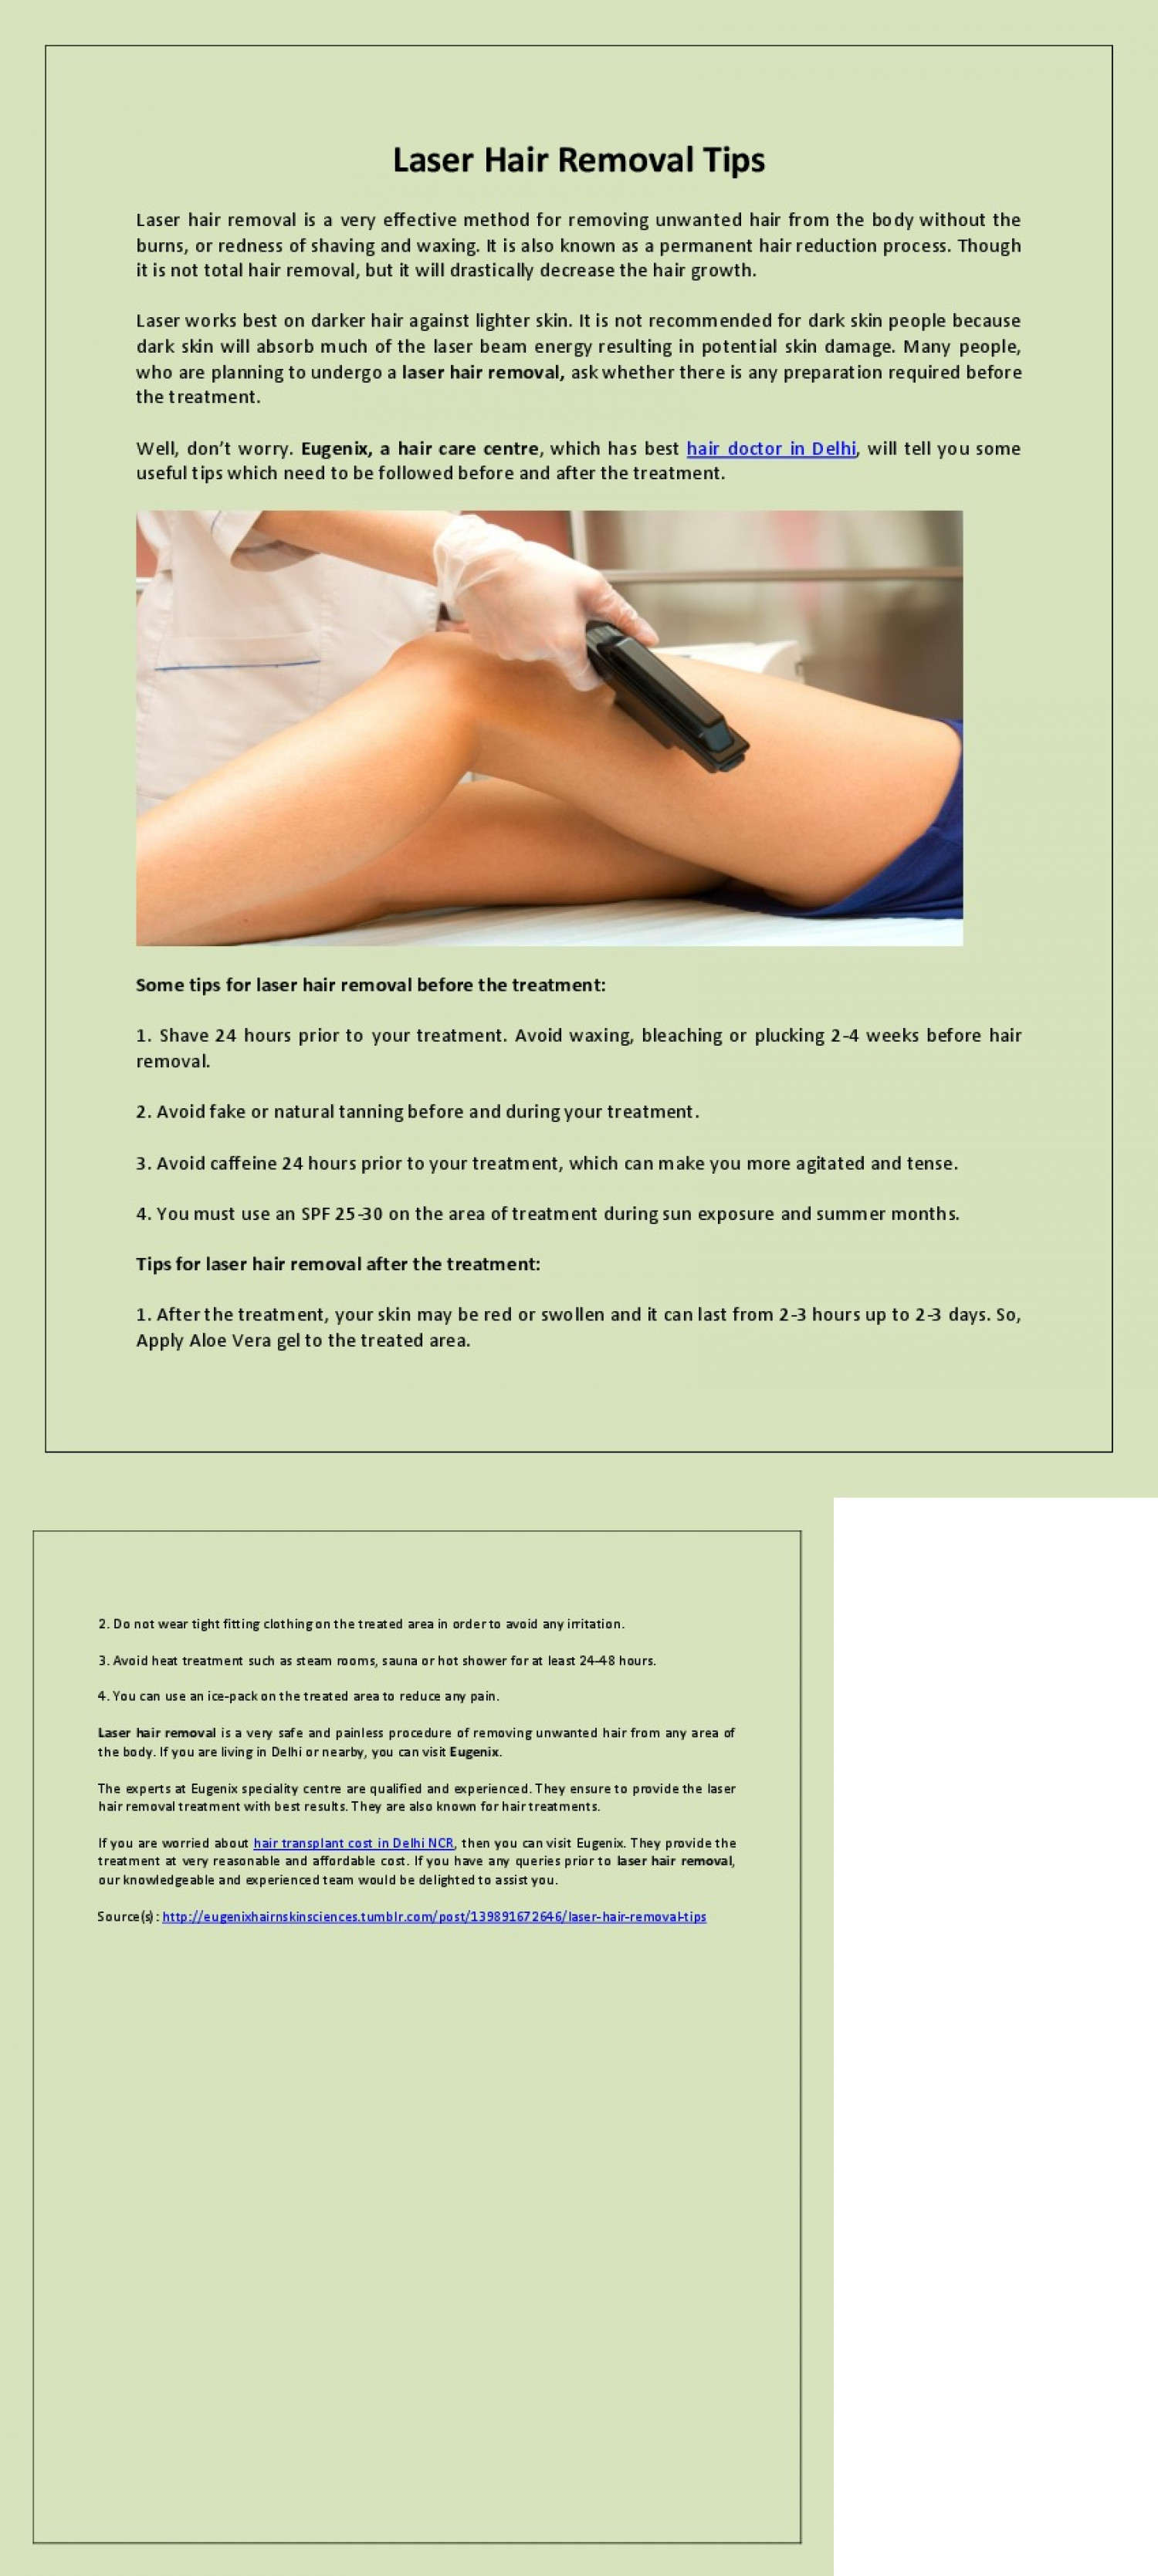 Laser Hair Removal Tips Visual Ly